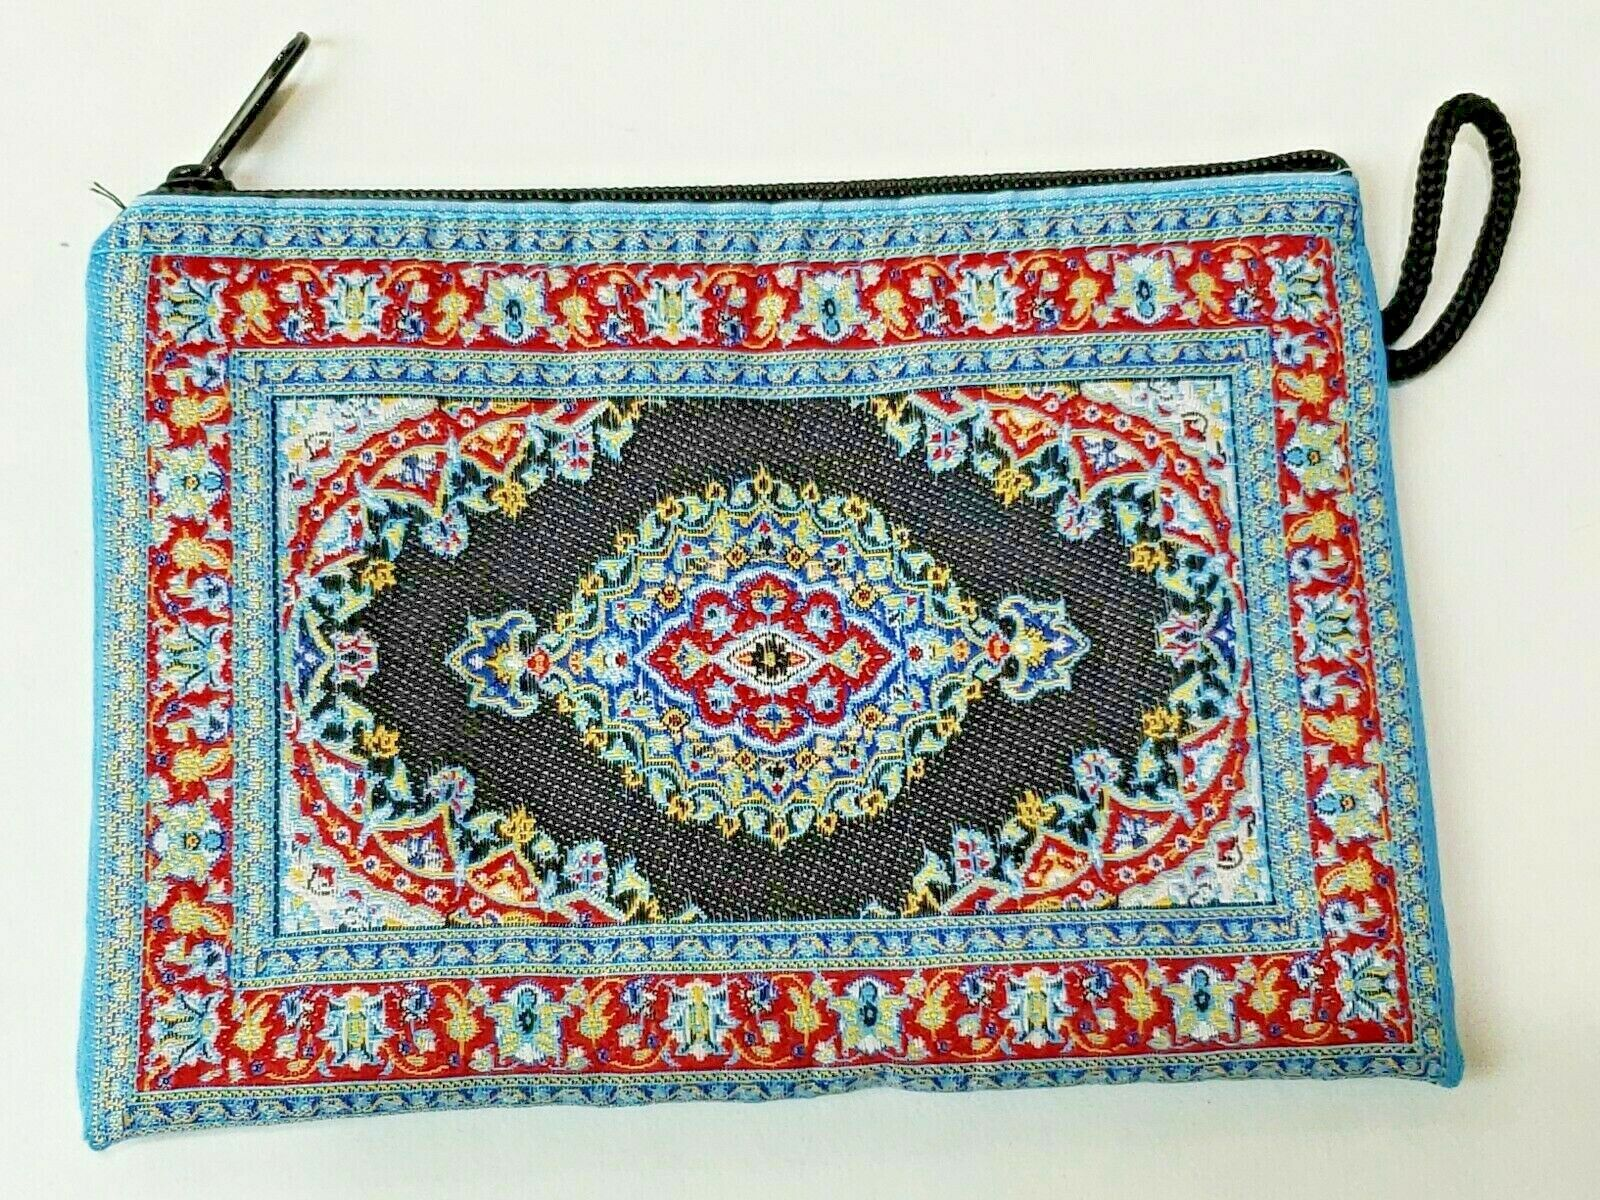 Authentic Coin Purse, Turkish Rug Design Coin PurseKnitted and Silky soft